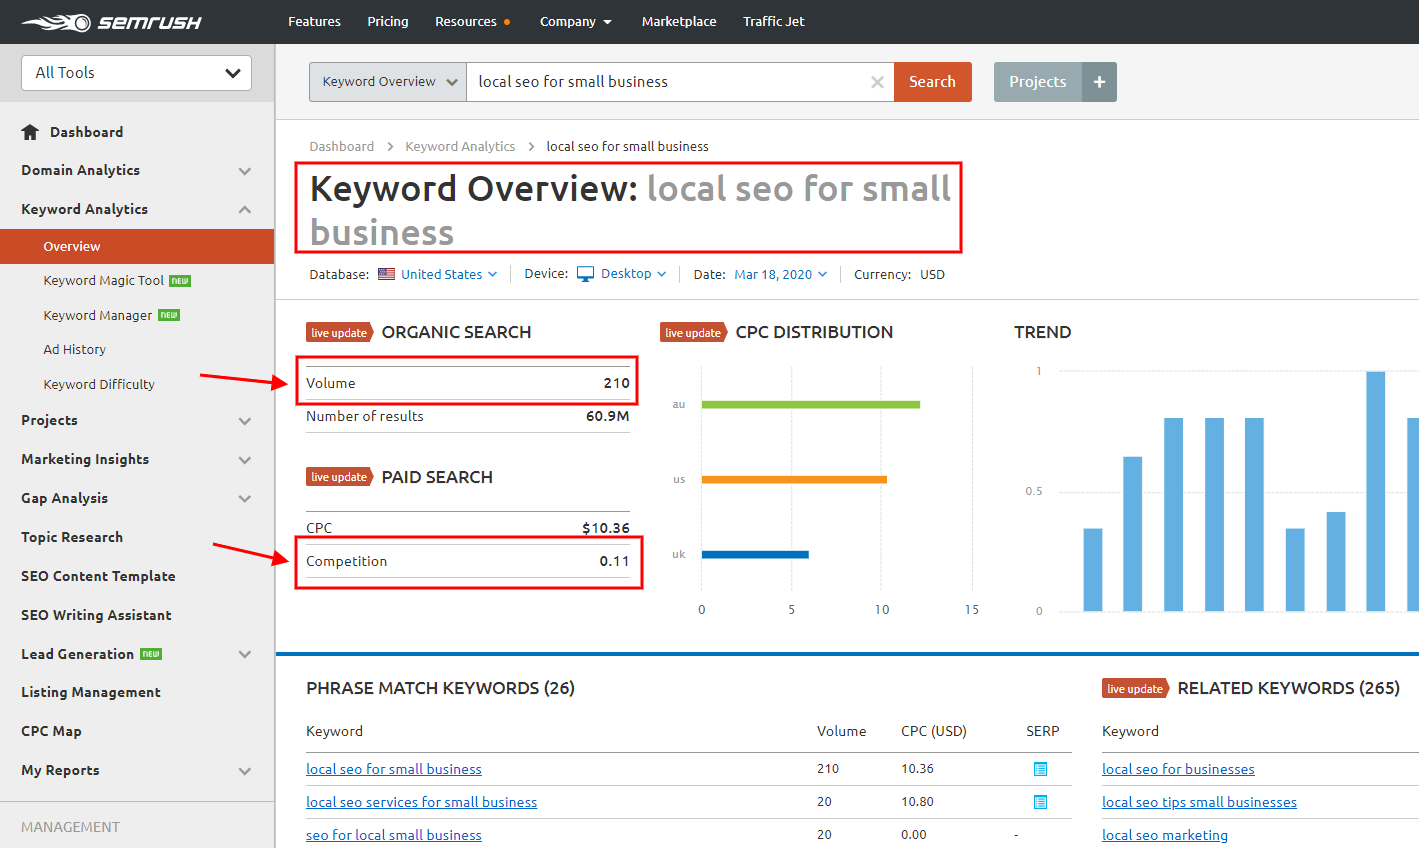 keyword overview - local seo for small business